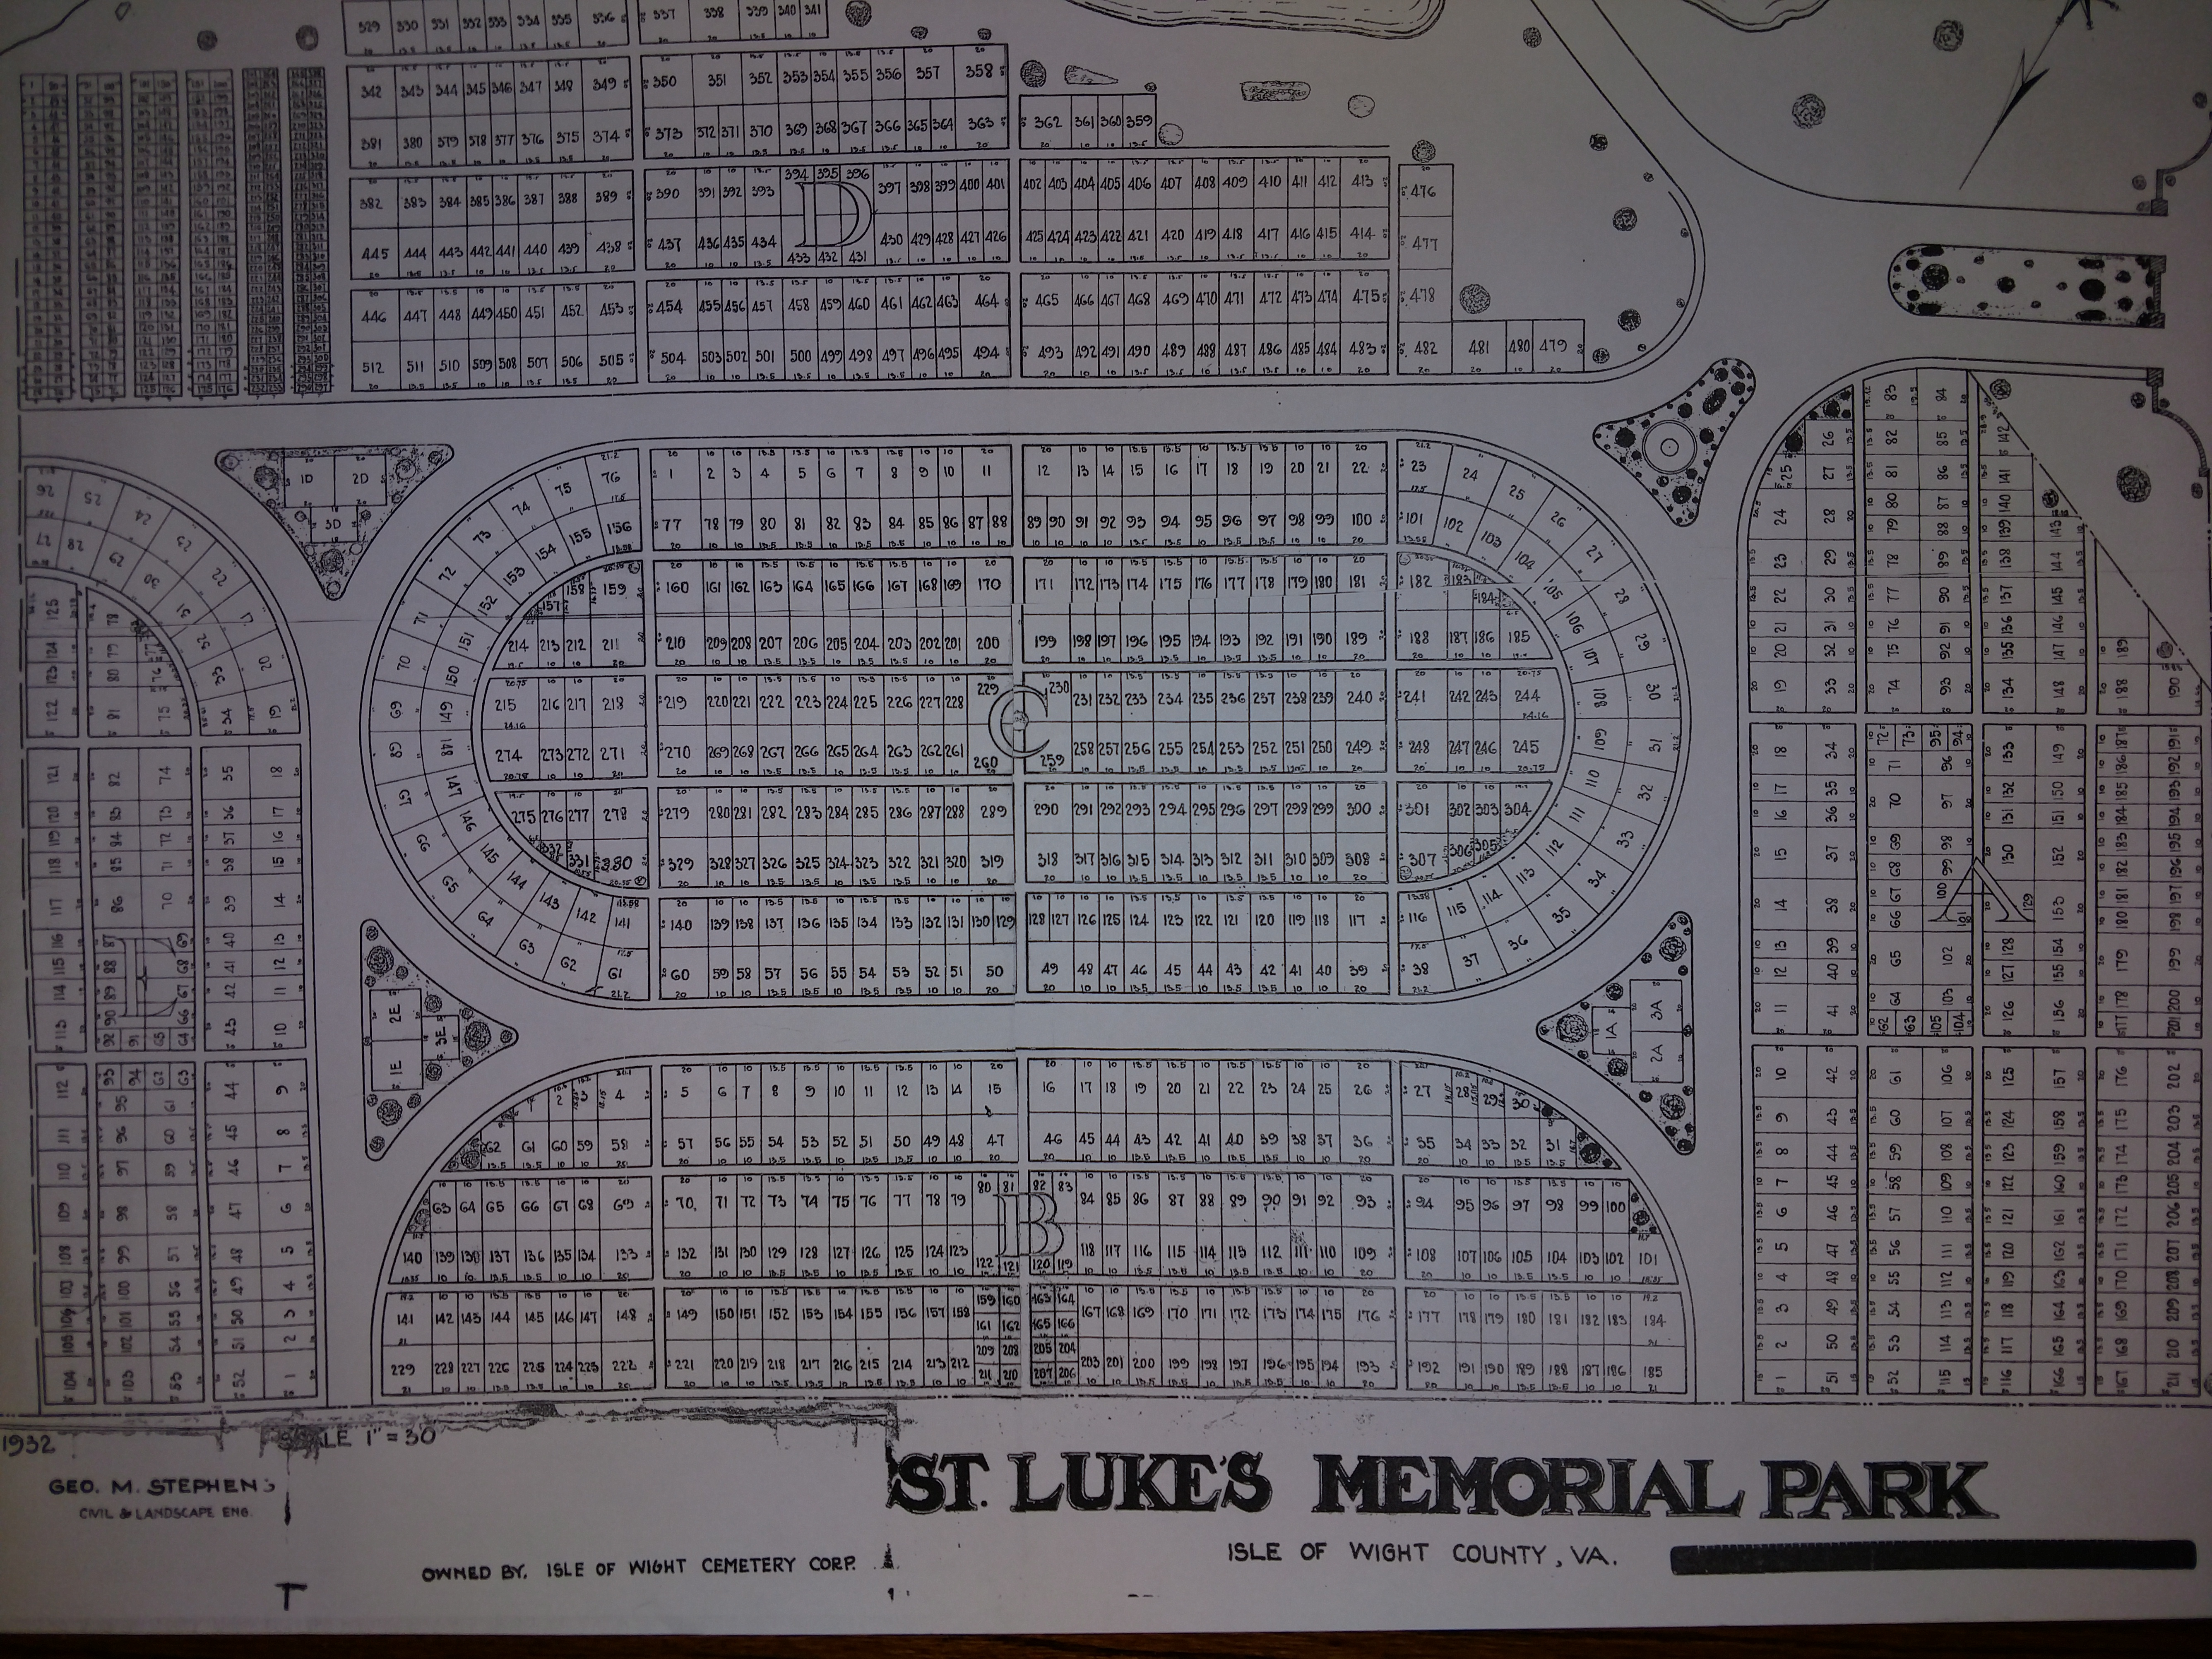 A 1932 Plat of St. Luke's Memorial Park Cemetery